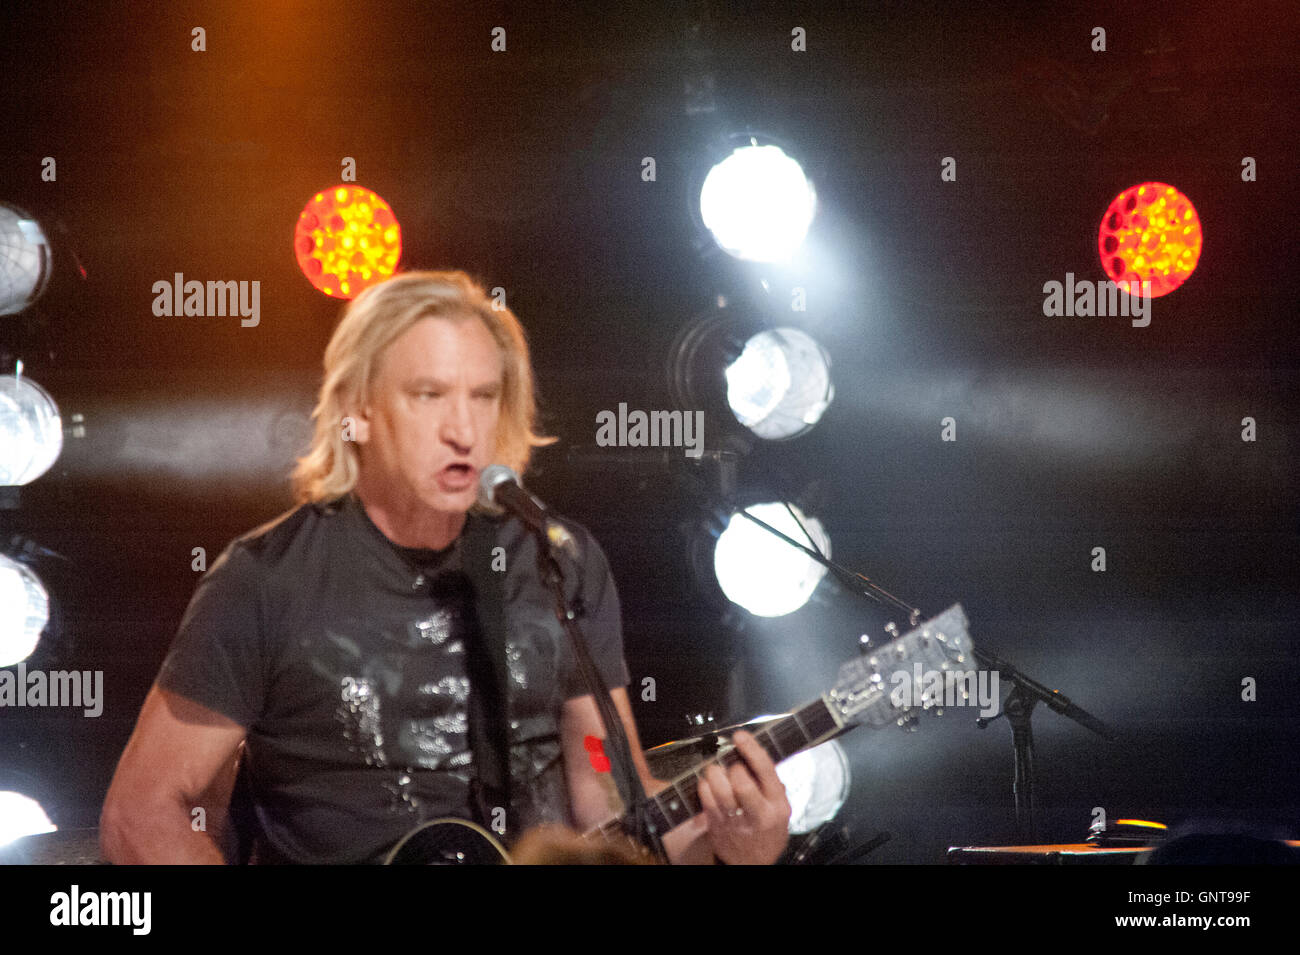 Joe Walsh at Q104 iHeartRadio Theater Presented By P.C. Richard & Son - June 4th, 2012 - Stock Image